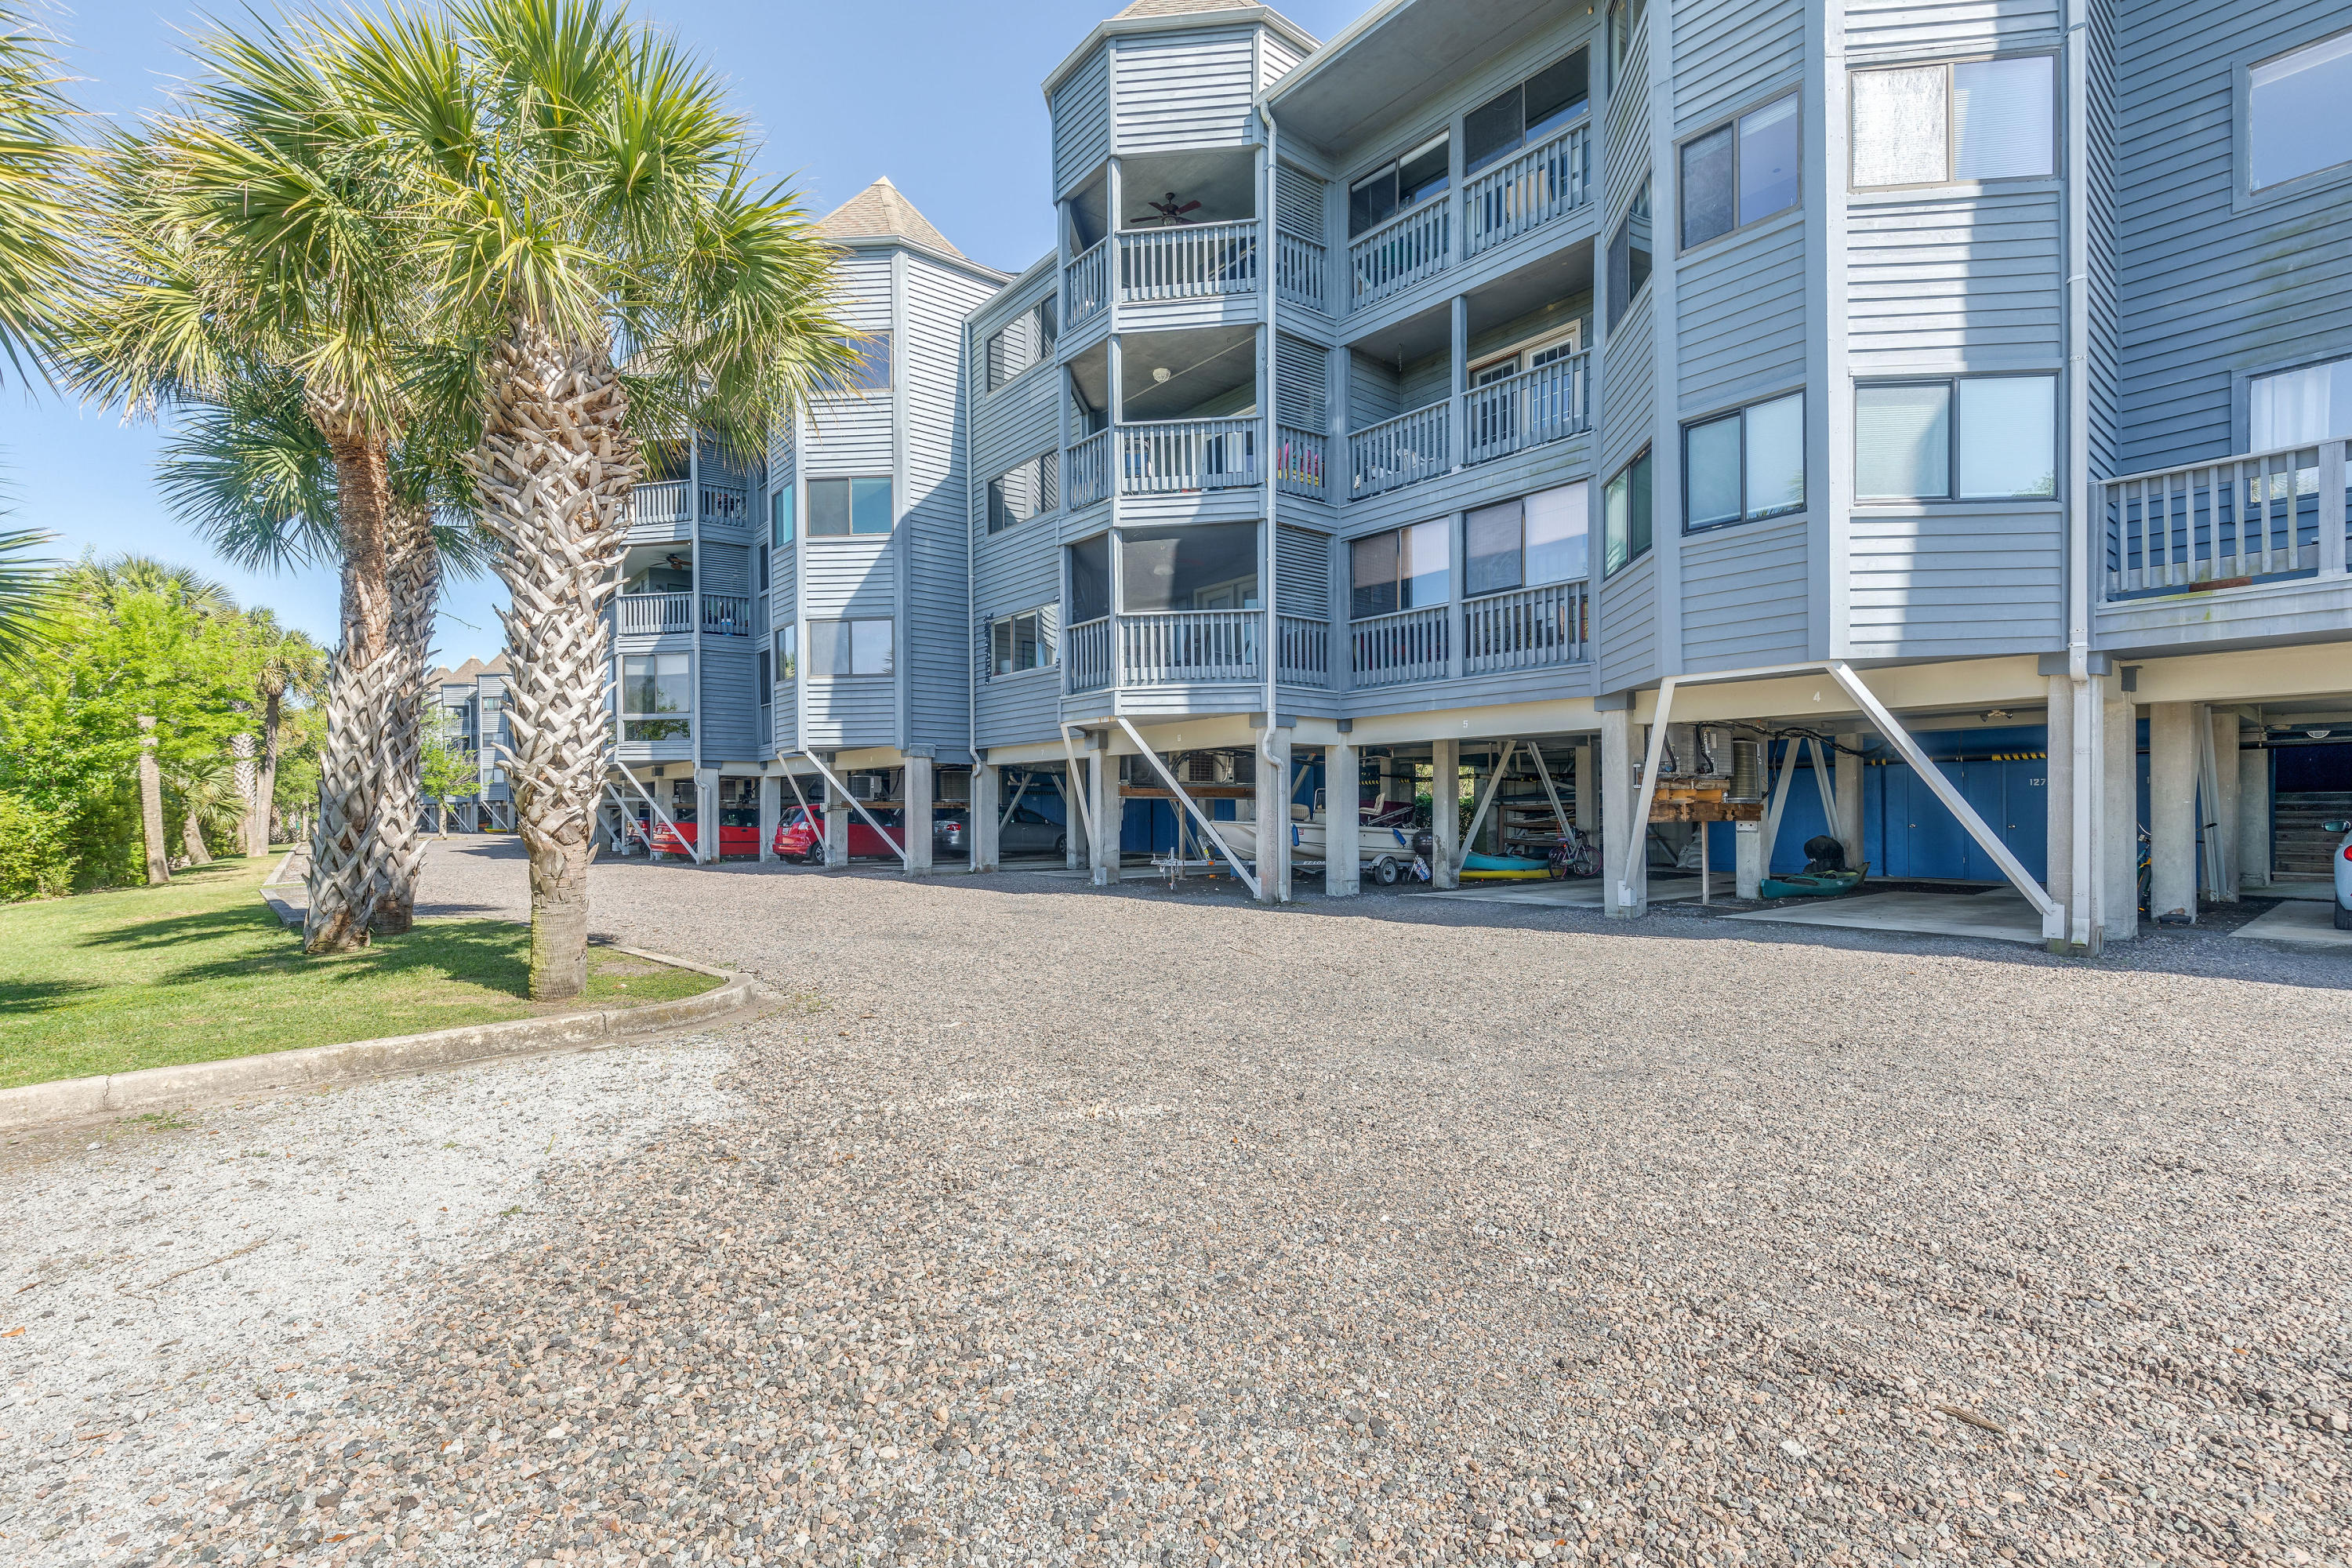 Mariners Cay Homes For Sale - 129 Marsh View Villas, Folly Beach, SC - 20